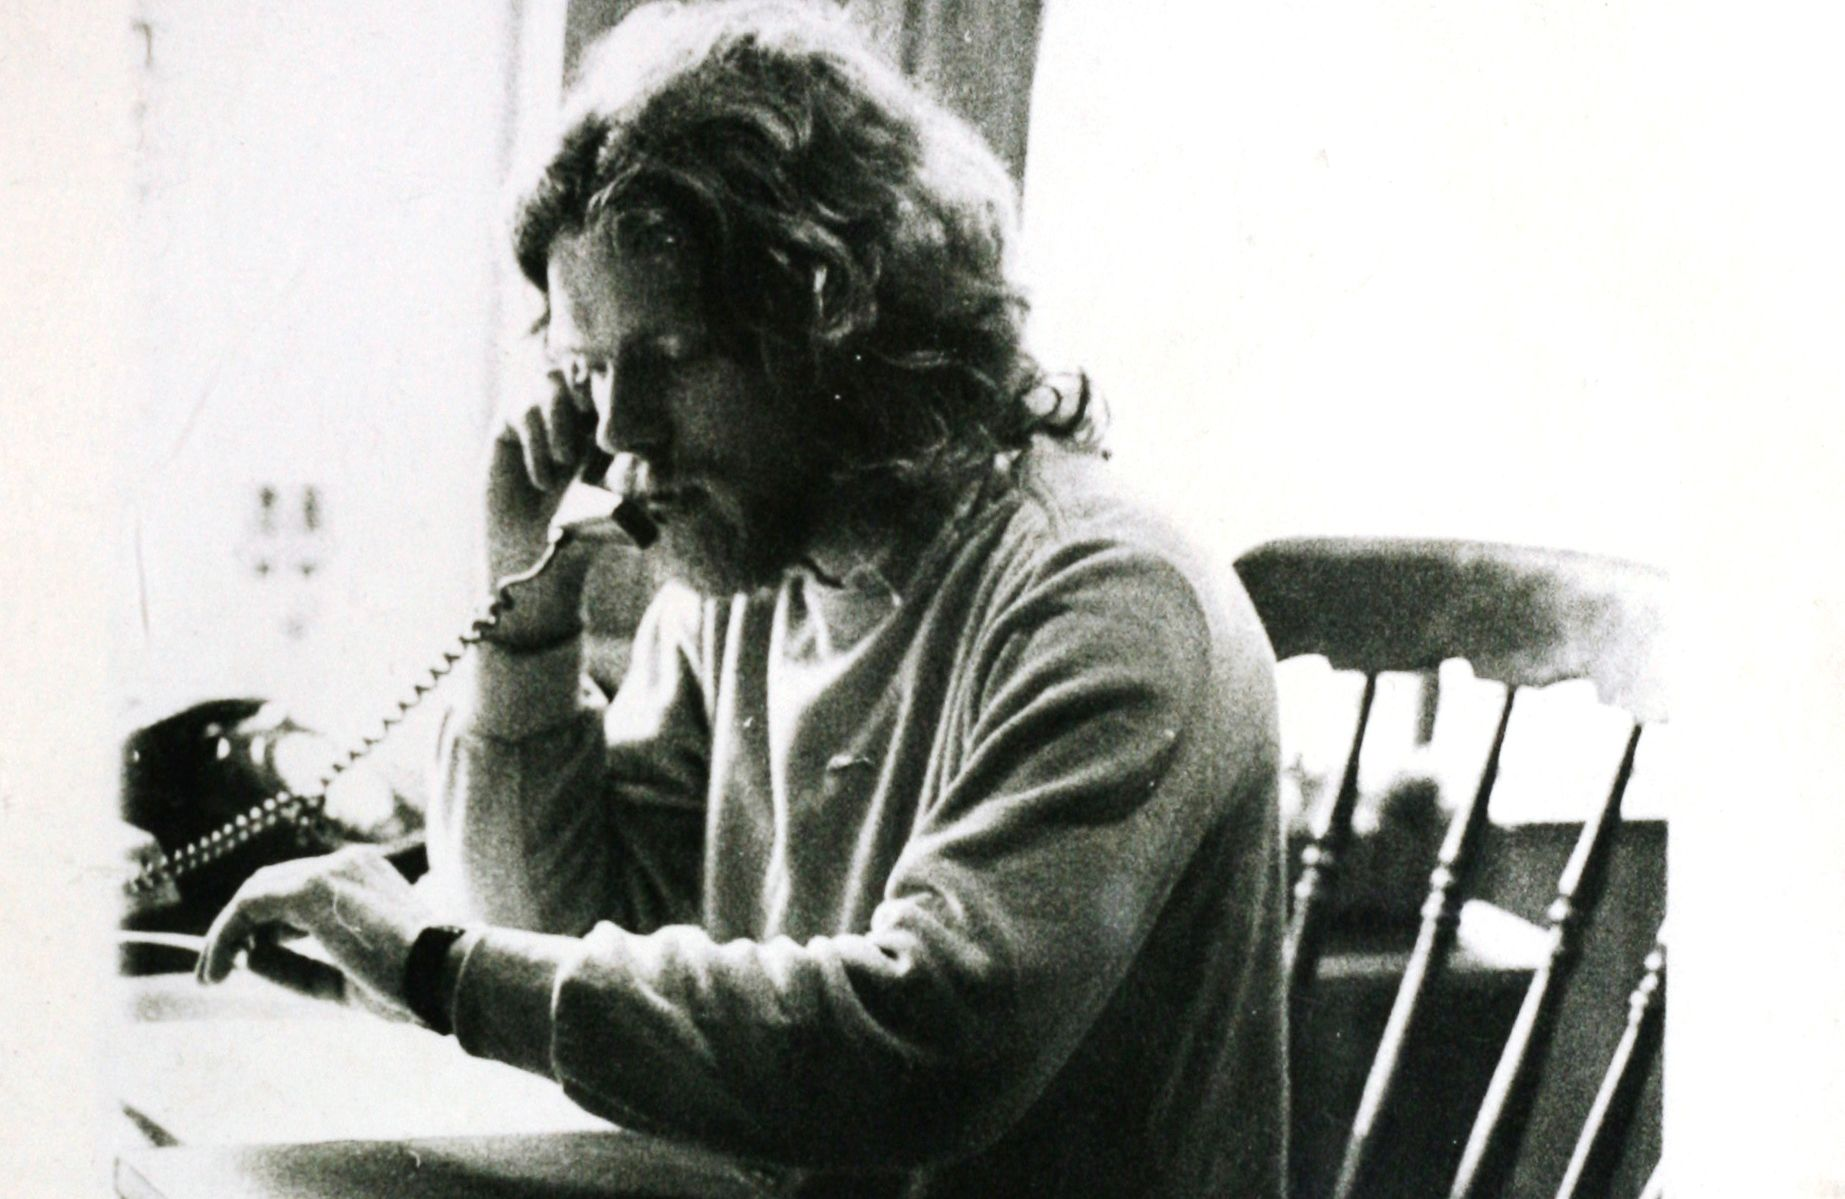 Richard Branson working early days